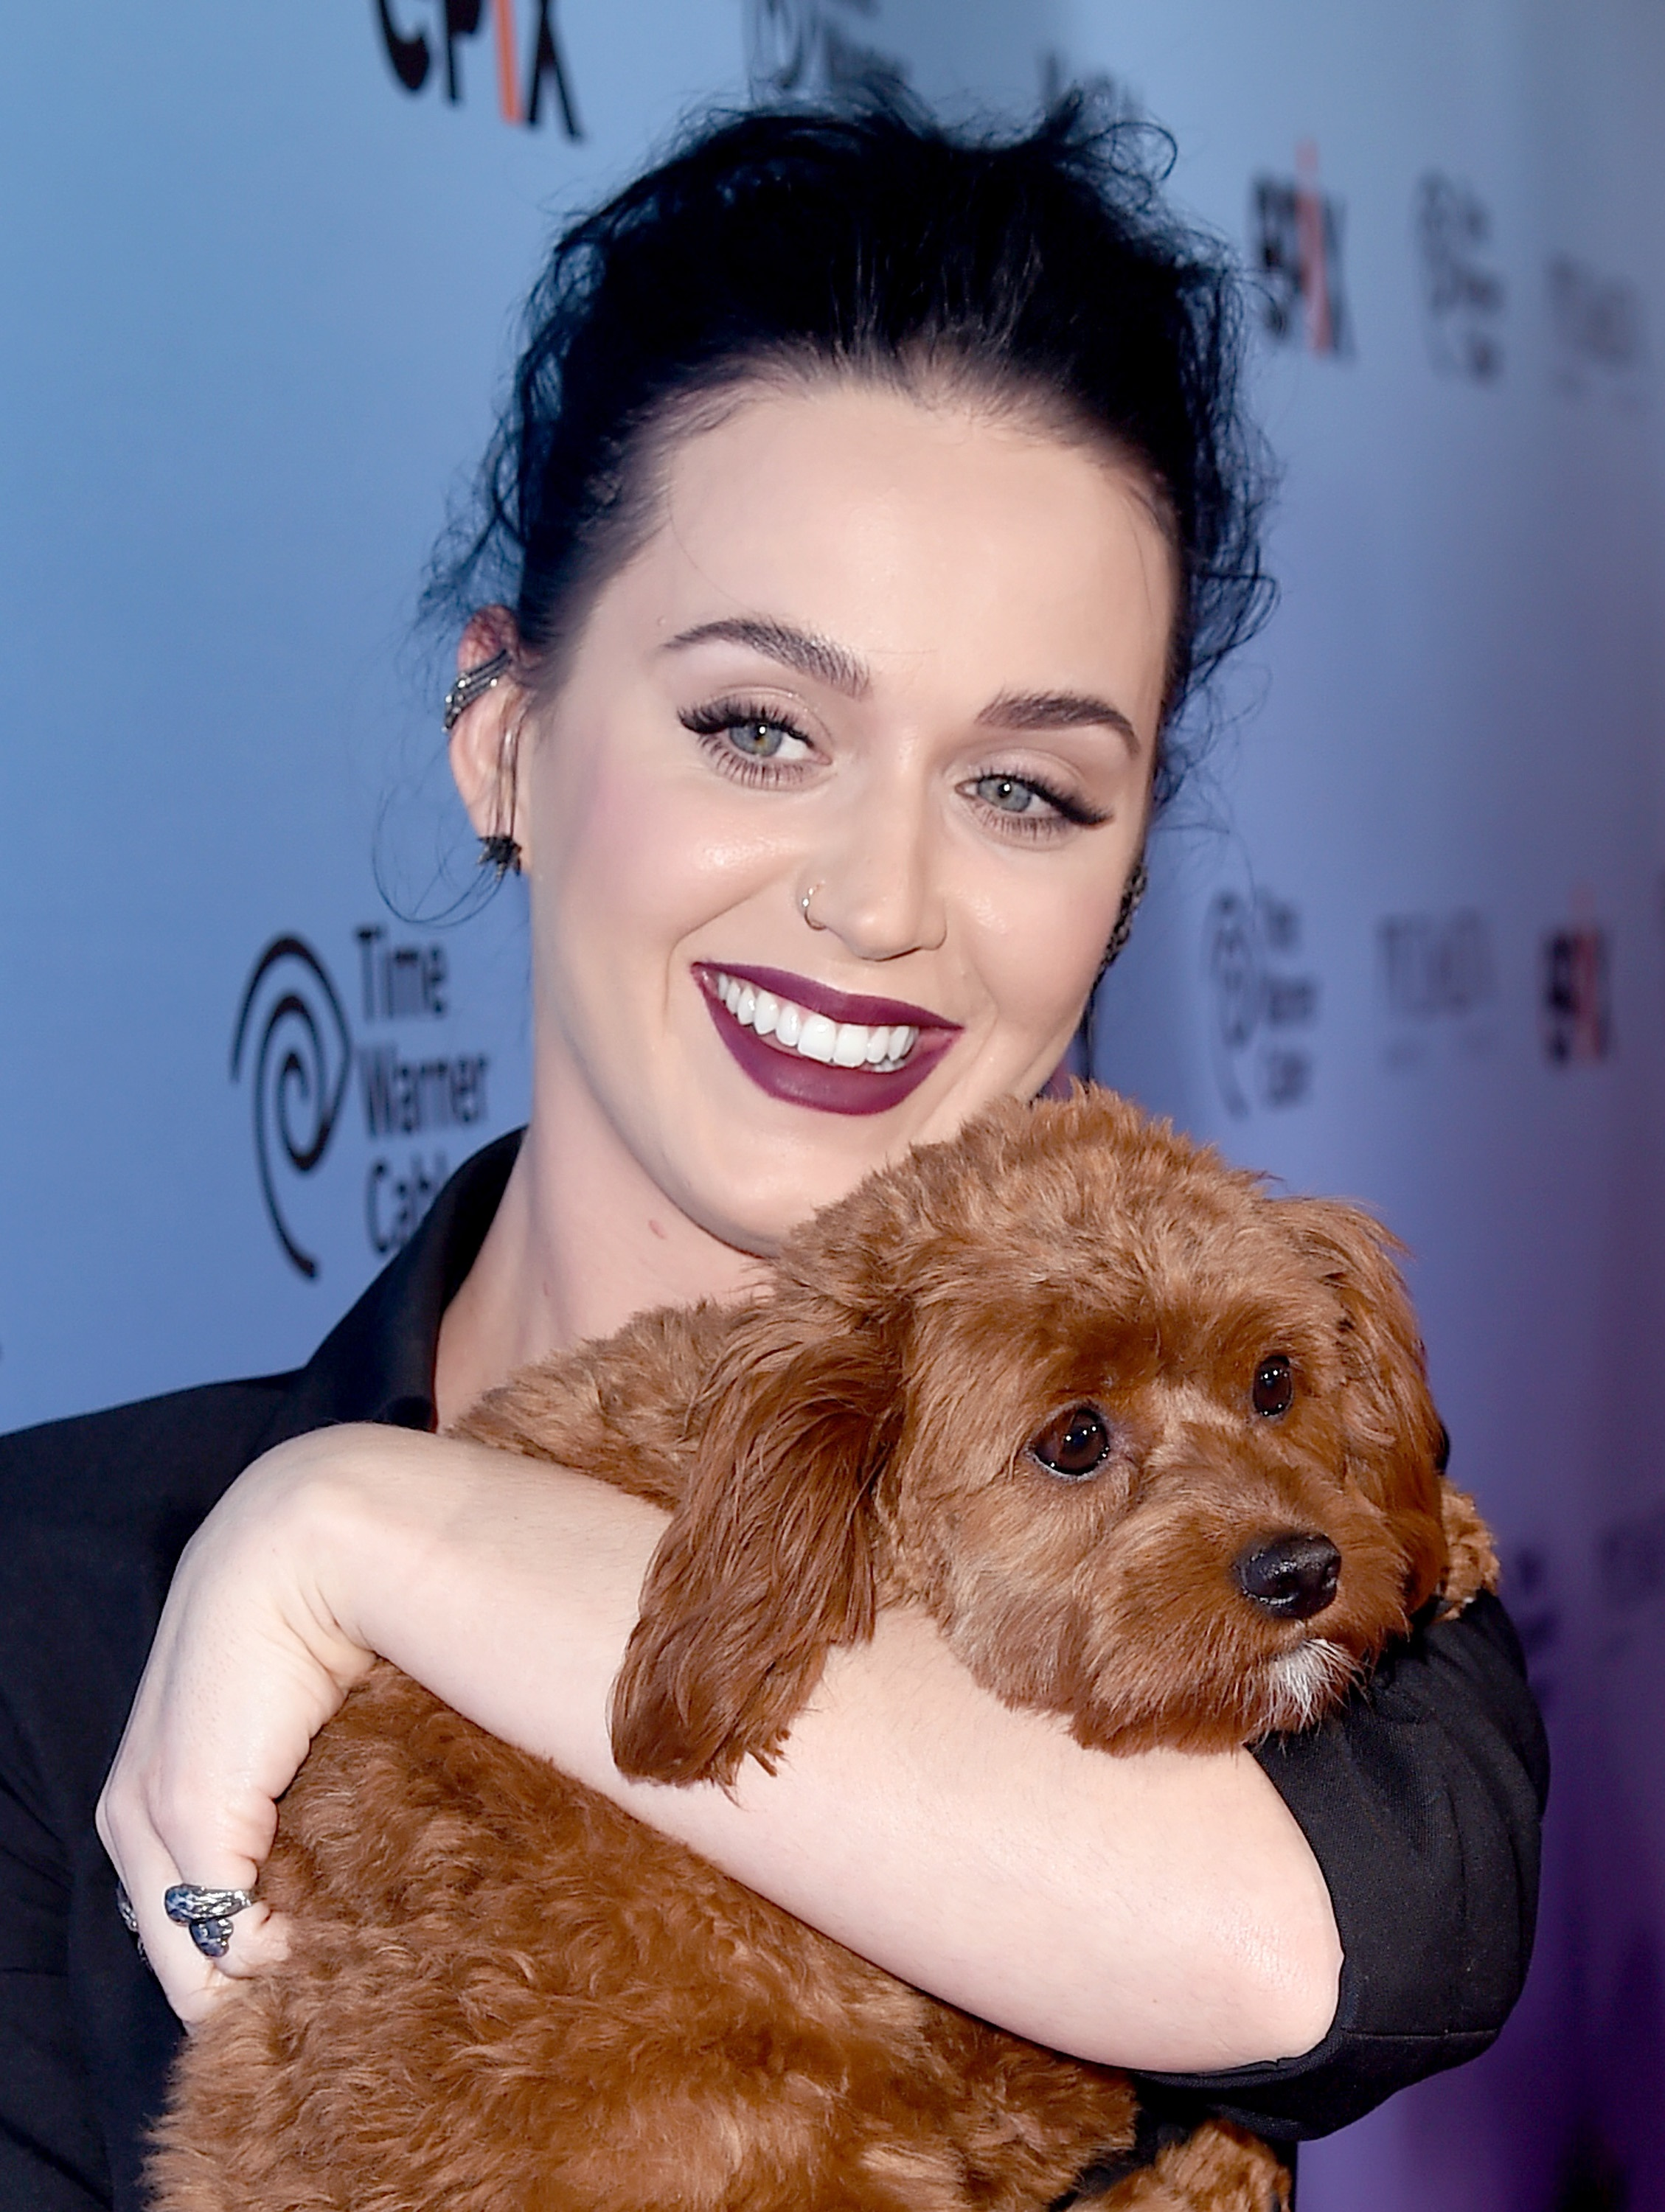 Katy Perry Showing Off Her Dog, Butters